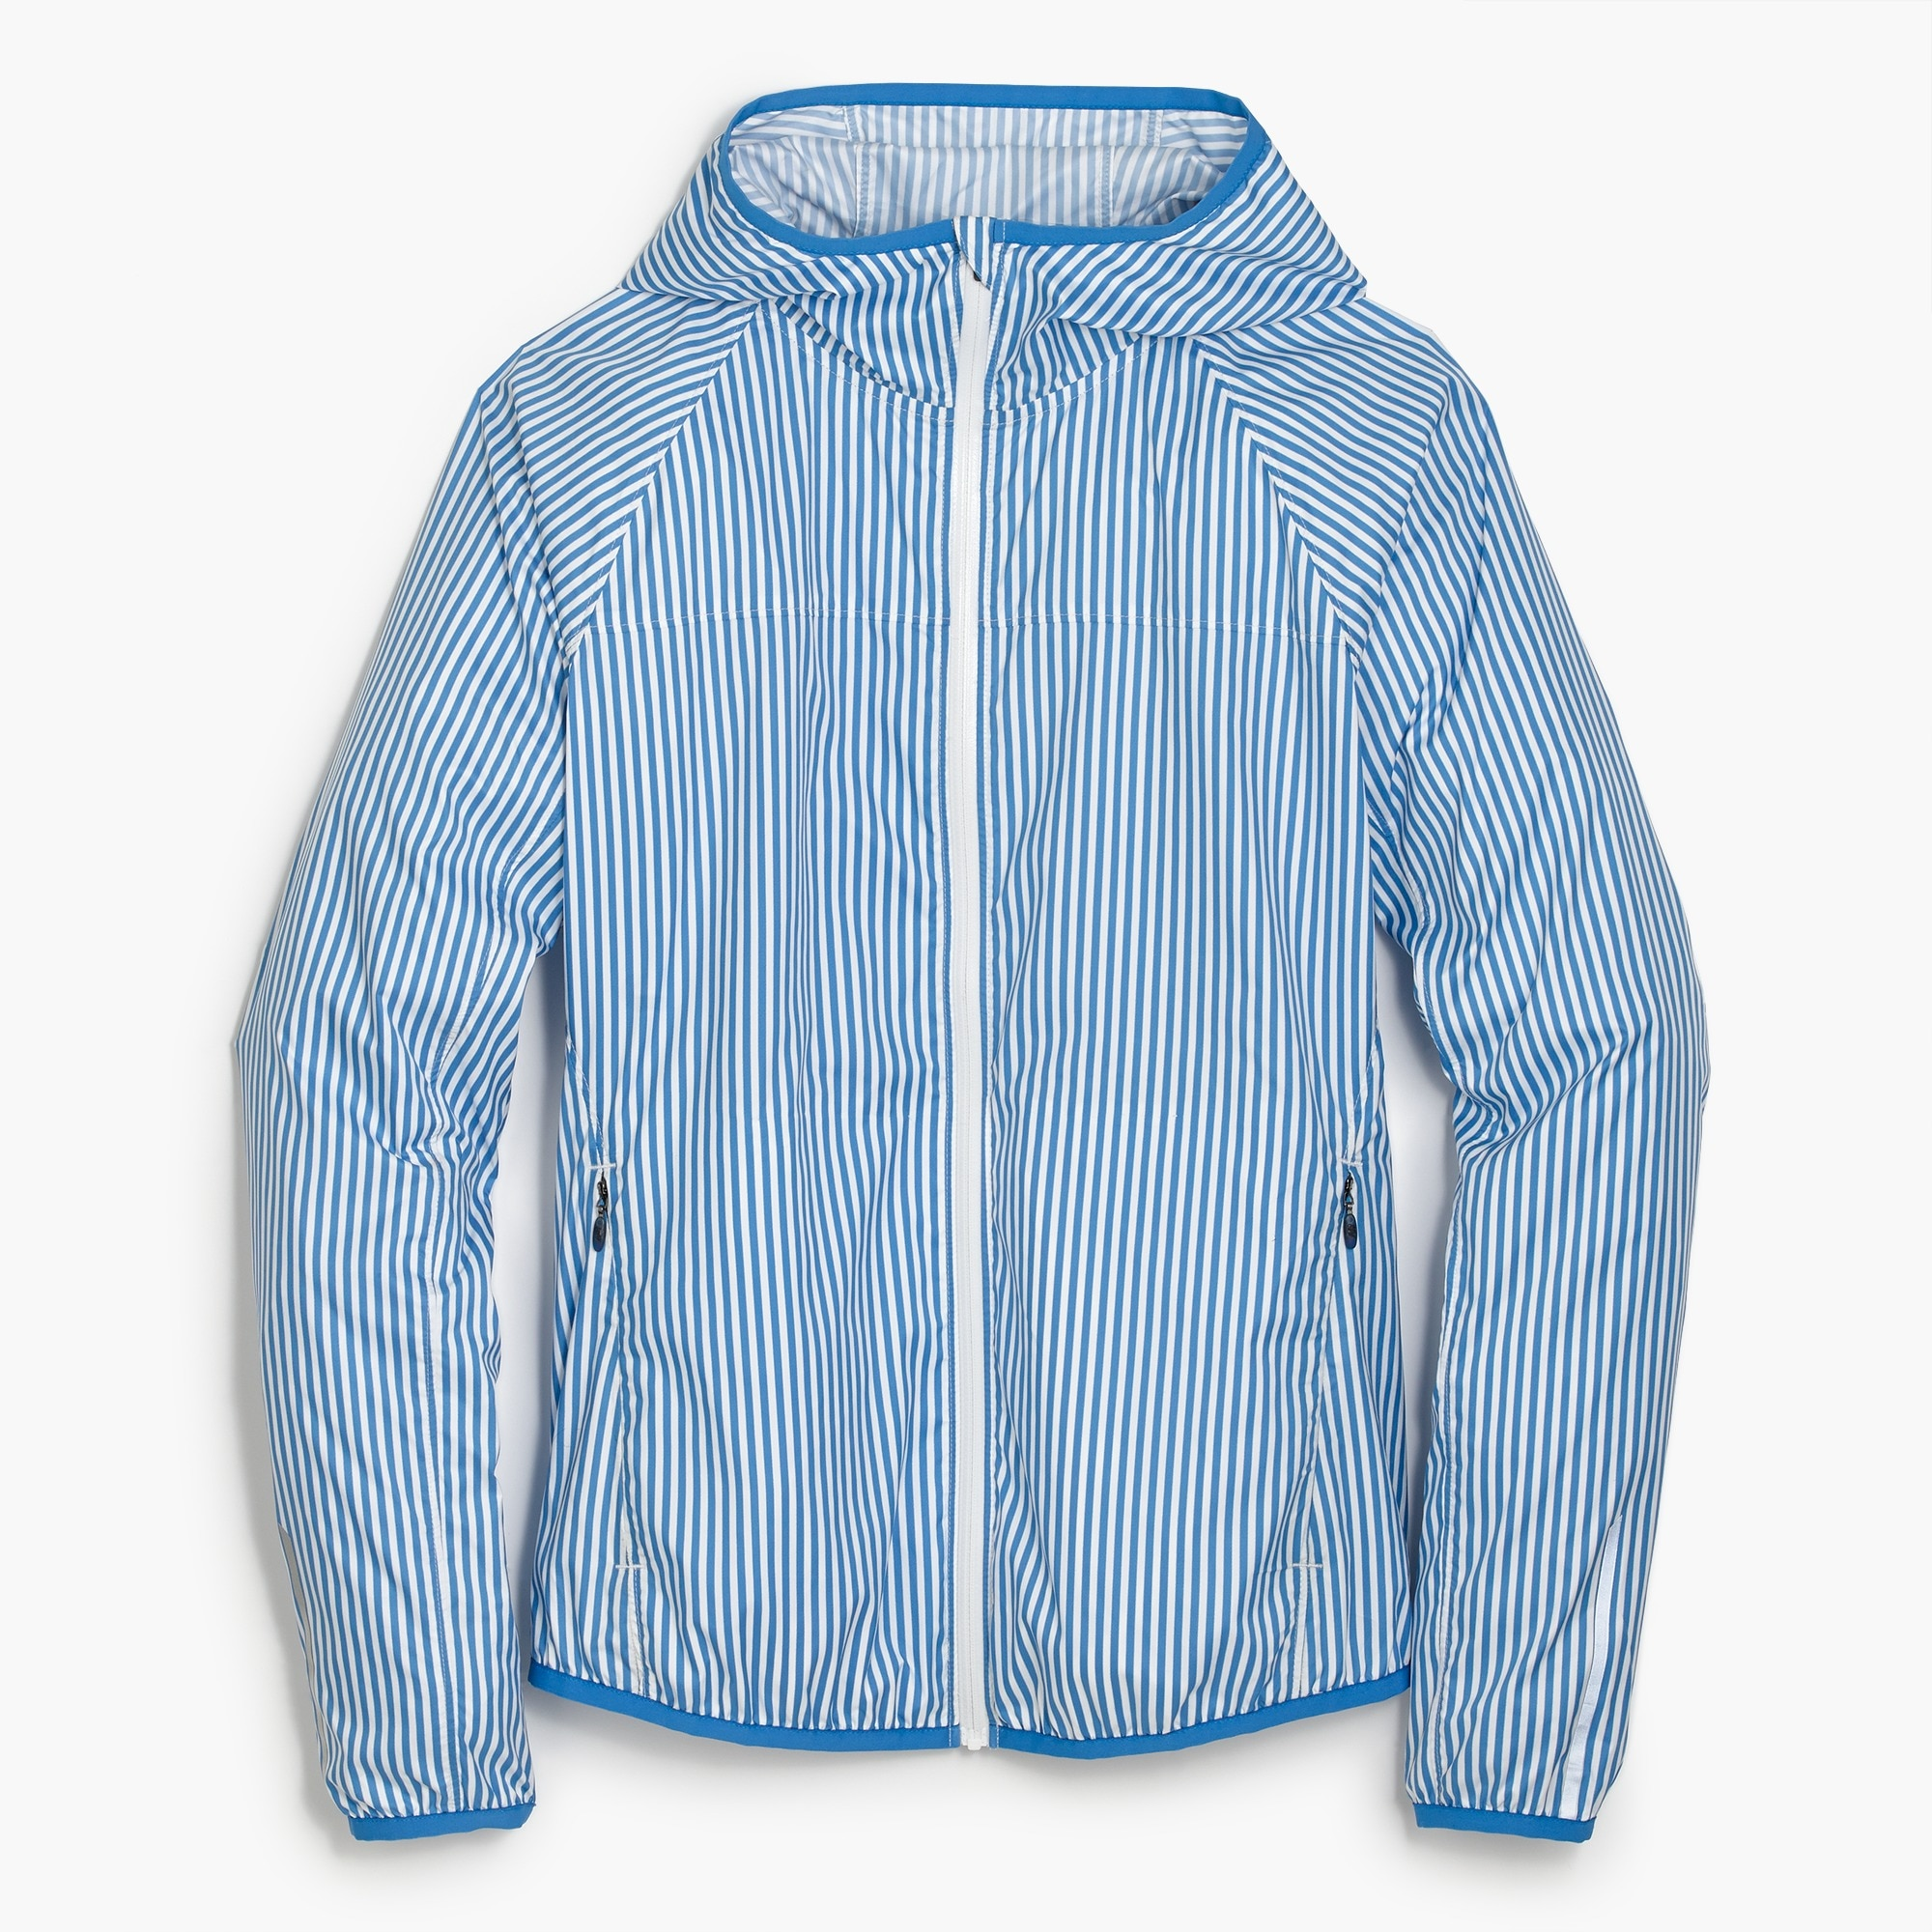 Image 2 for New Balance® for J.Crew windbreaker jacket in stripe